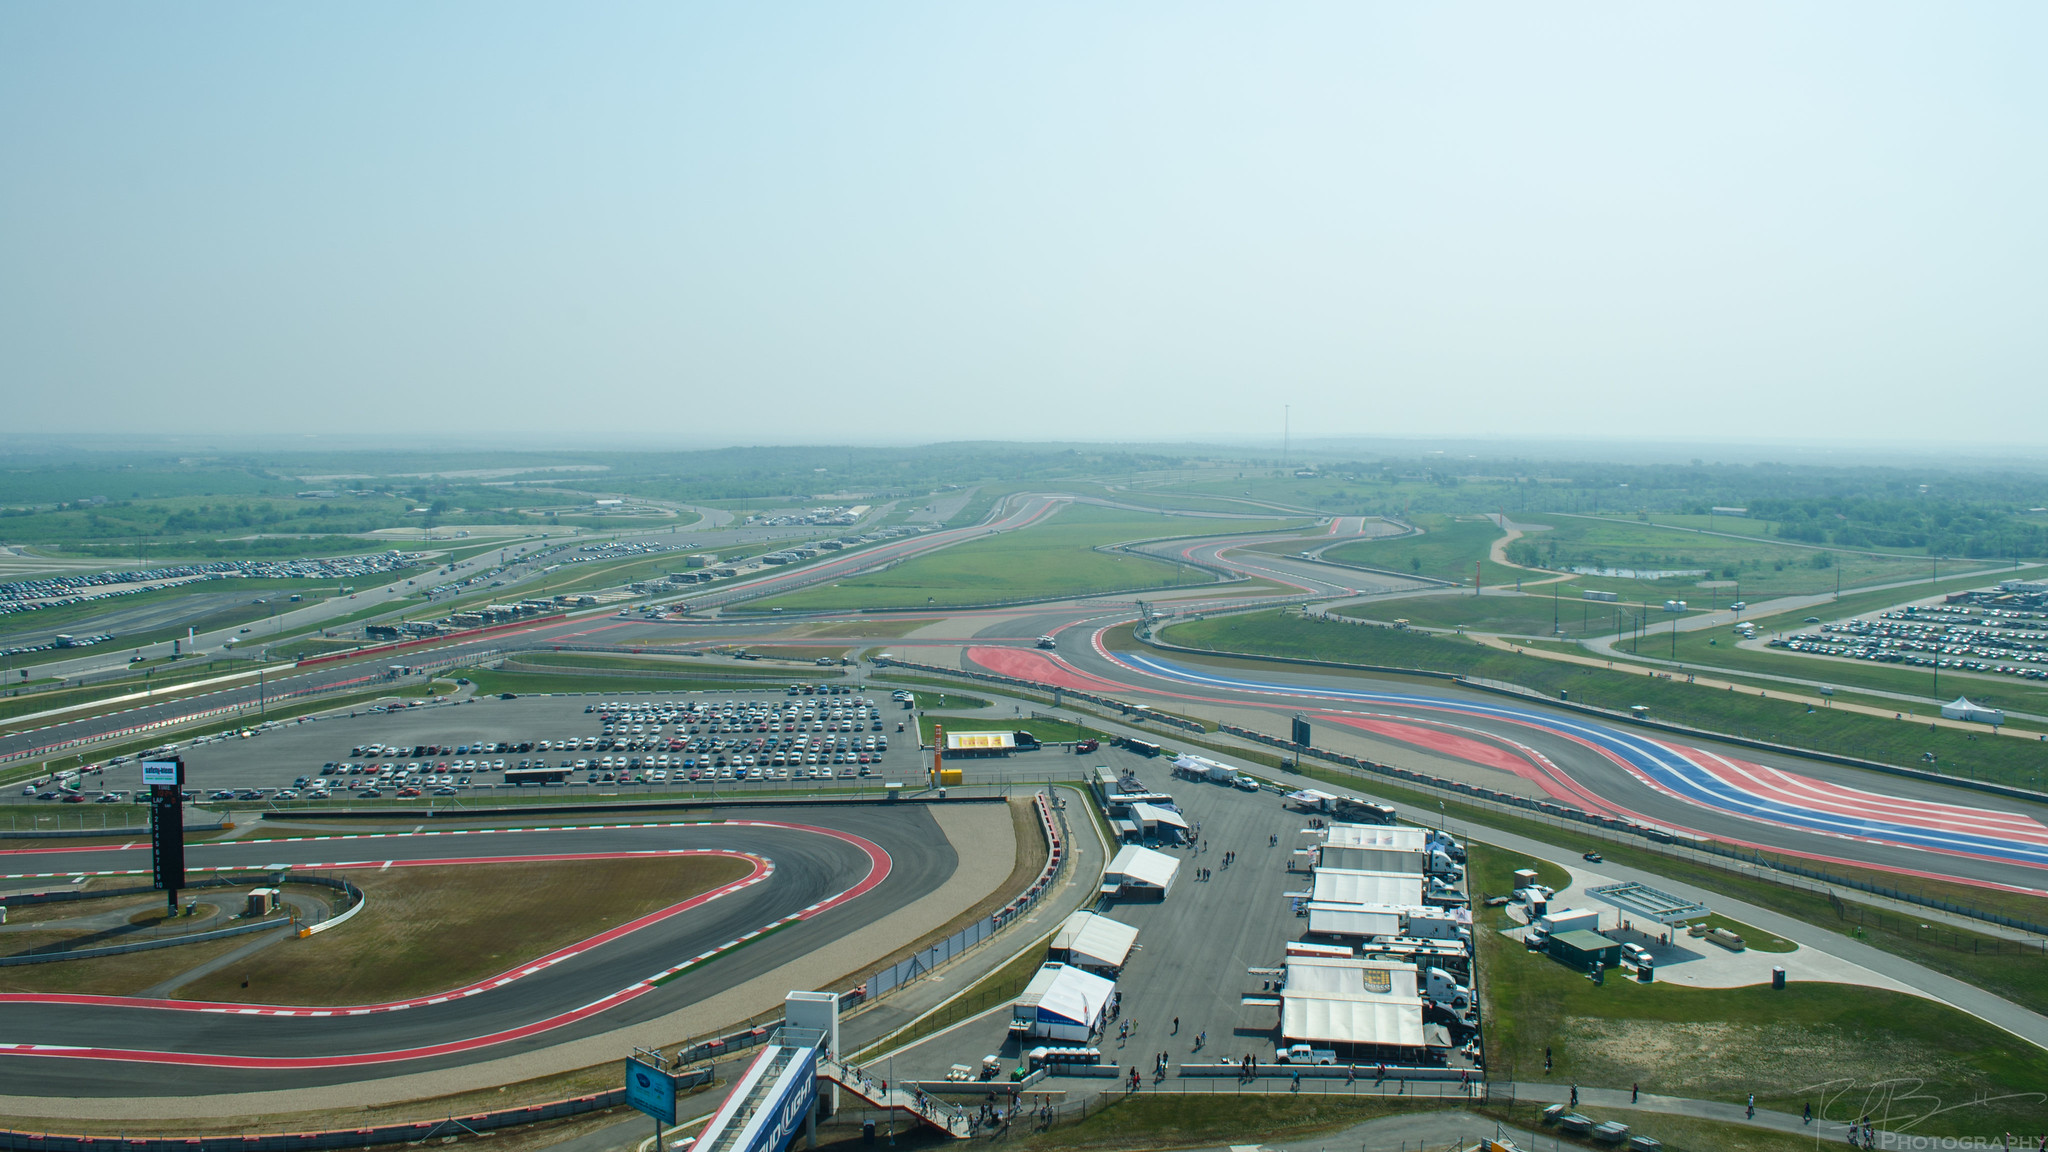 Looking towards Turn 11